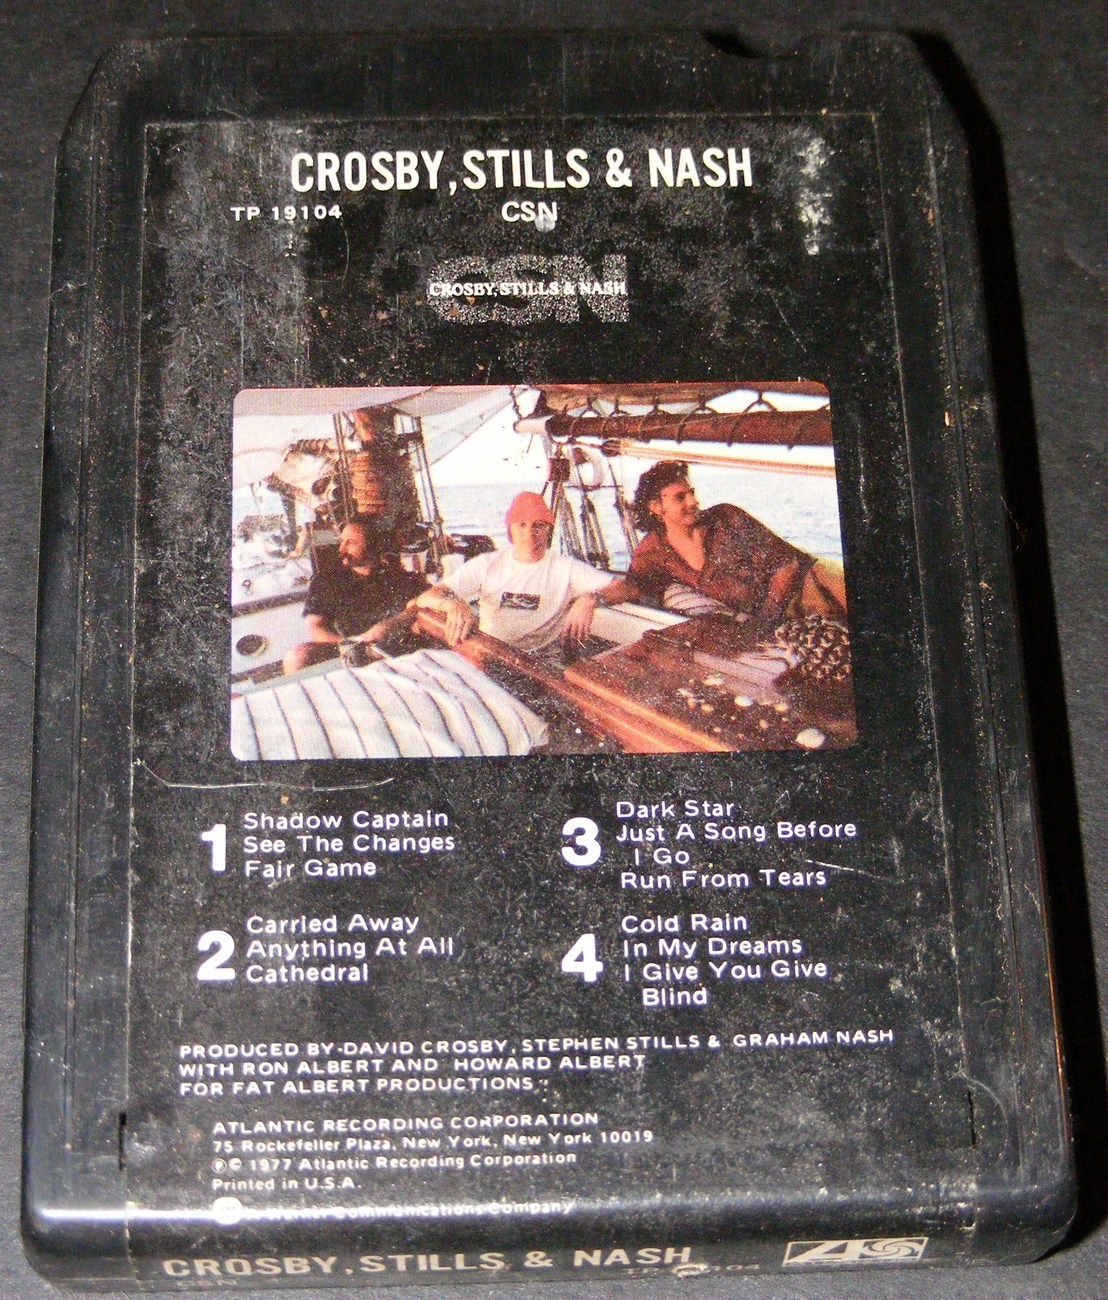 Crosby, Stills & Nash 8 Track